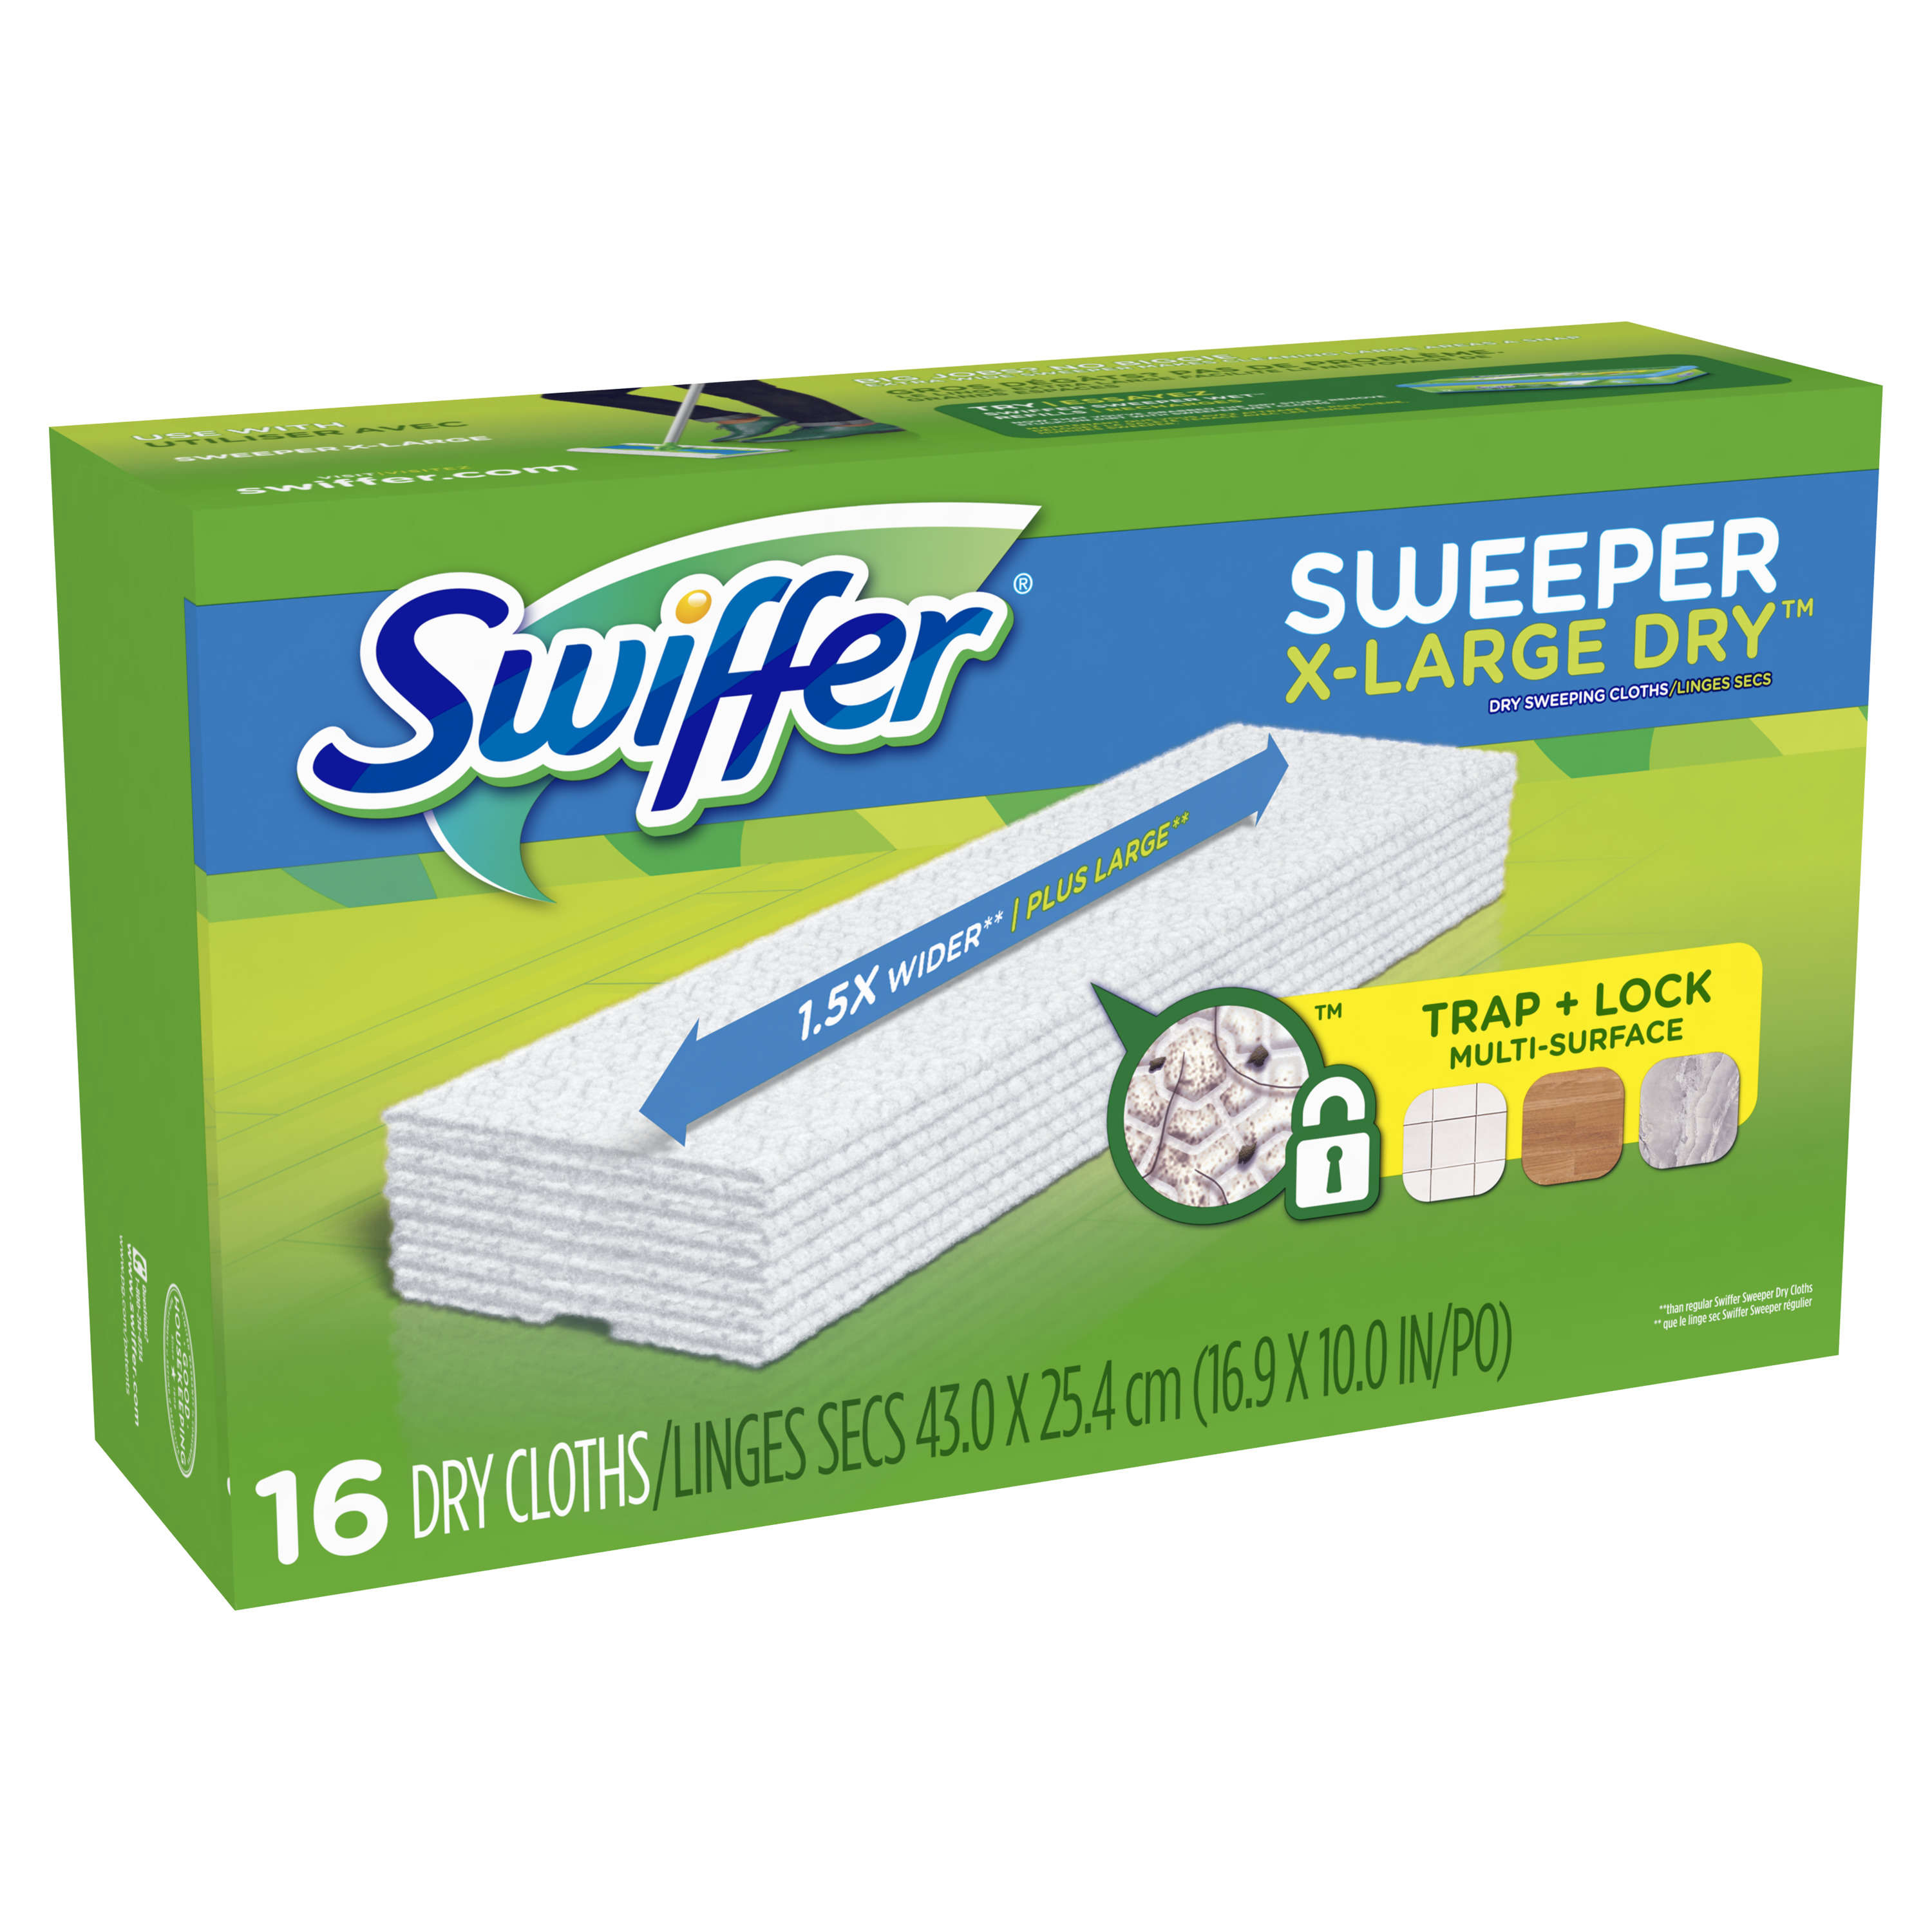 Swiffer Sweeper Dry Sweeping Pad Multi Surface Refills for X-Large Dusters Floor Mop, Unscented, 16 Count